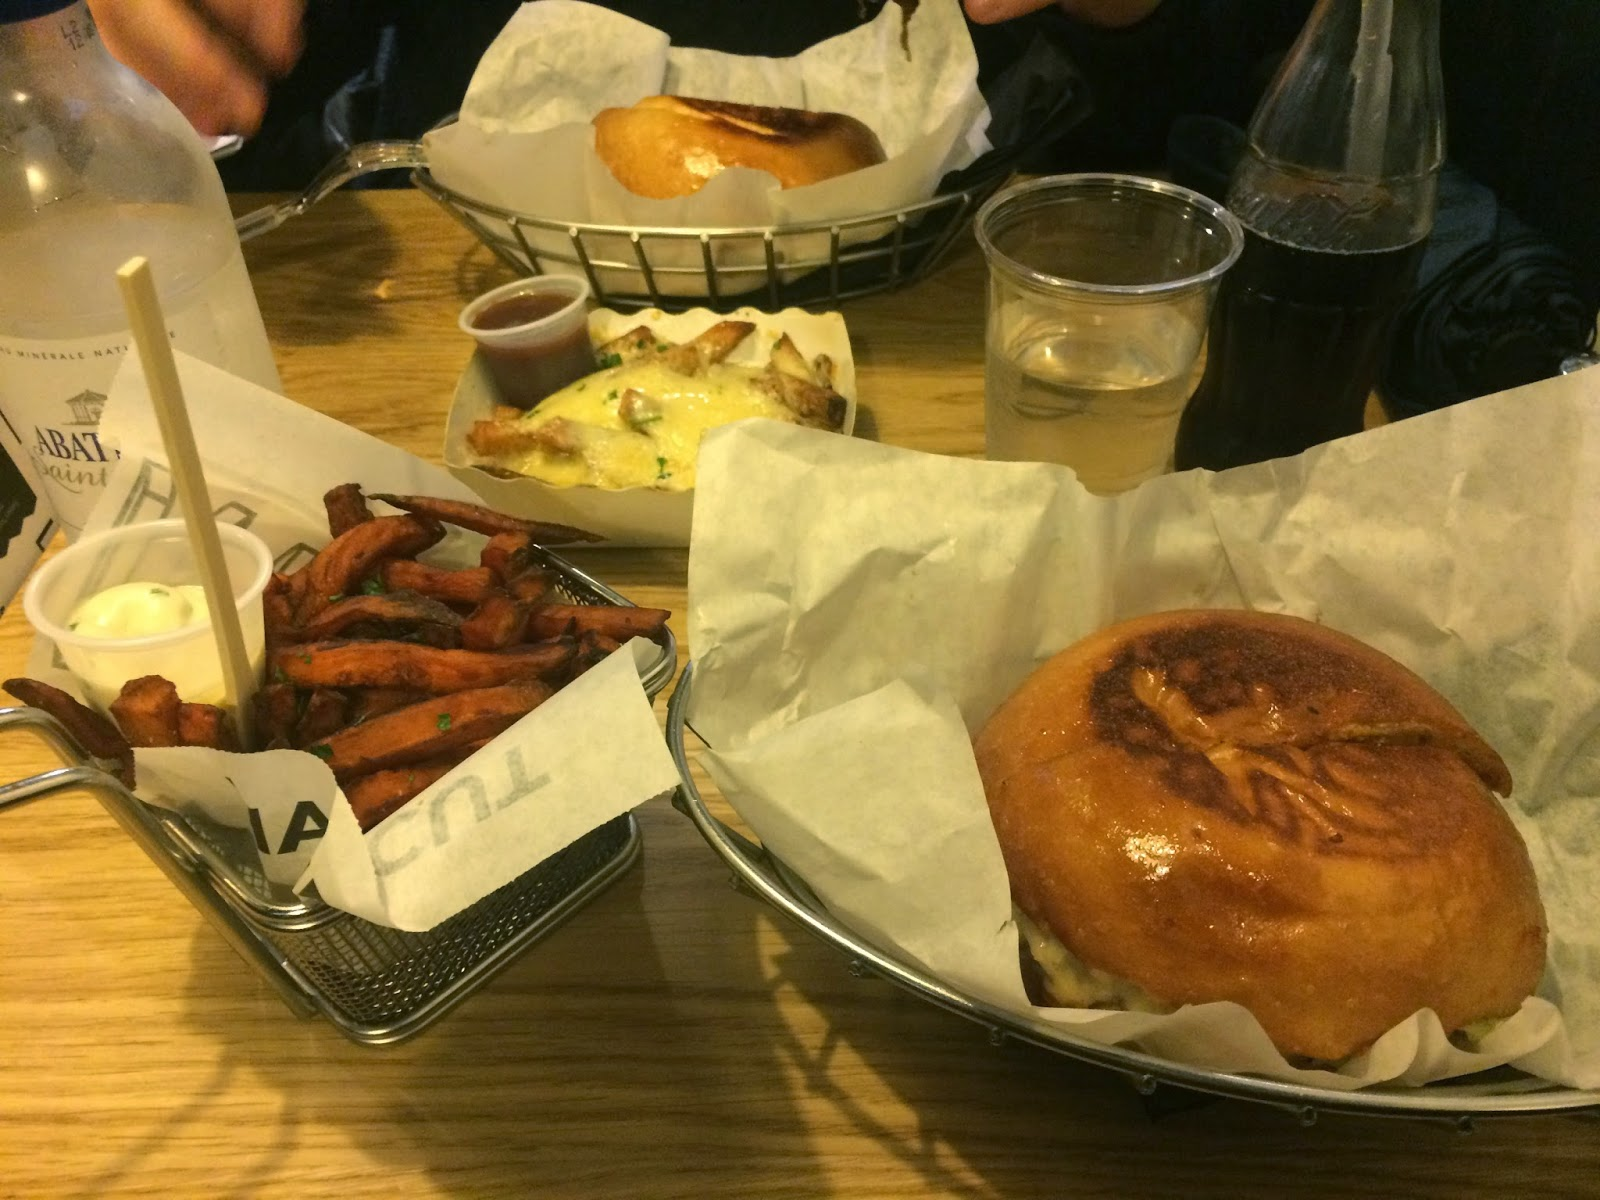 Burgers, sweet potato fries & cheese fries at Blend, rue d'Argout, Paris